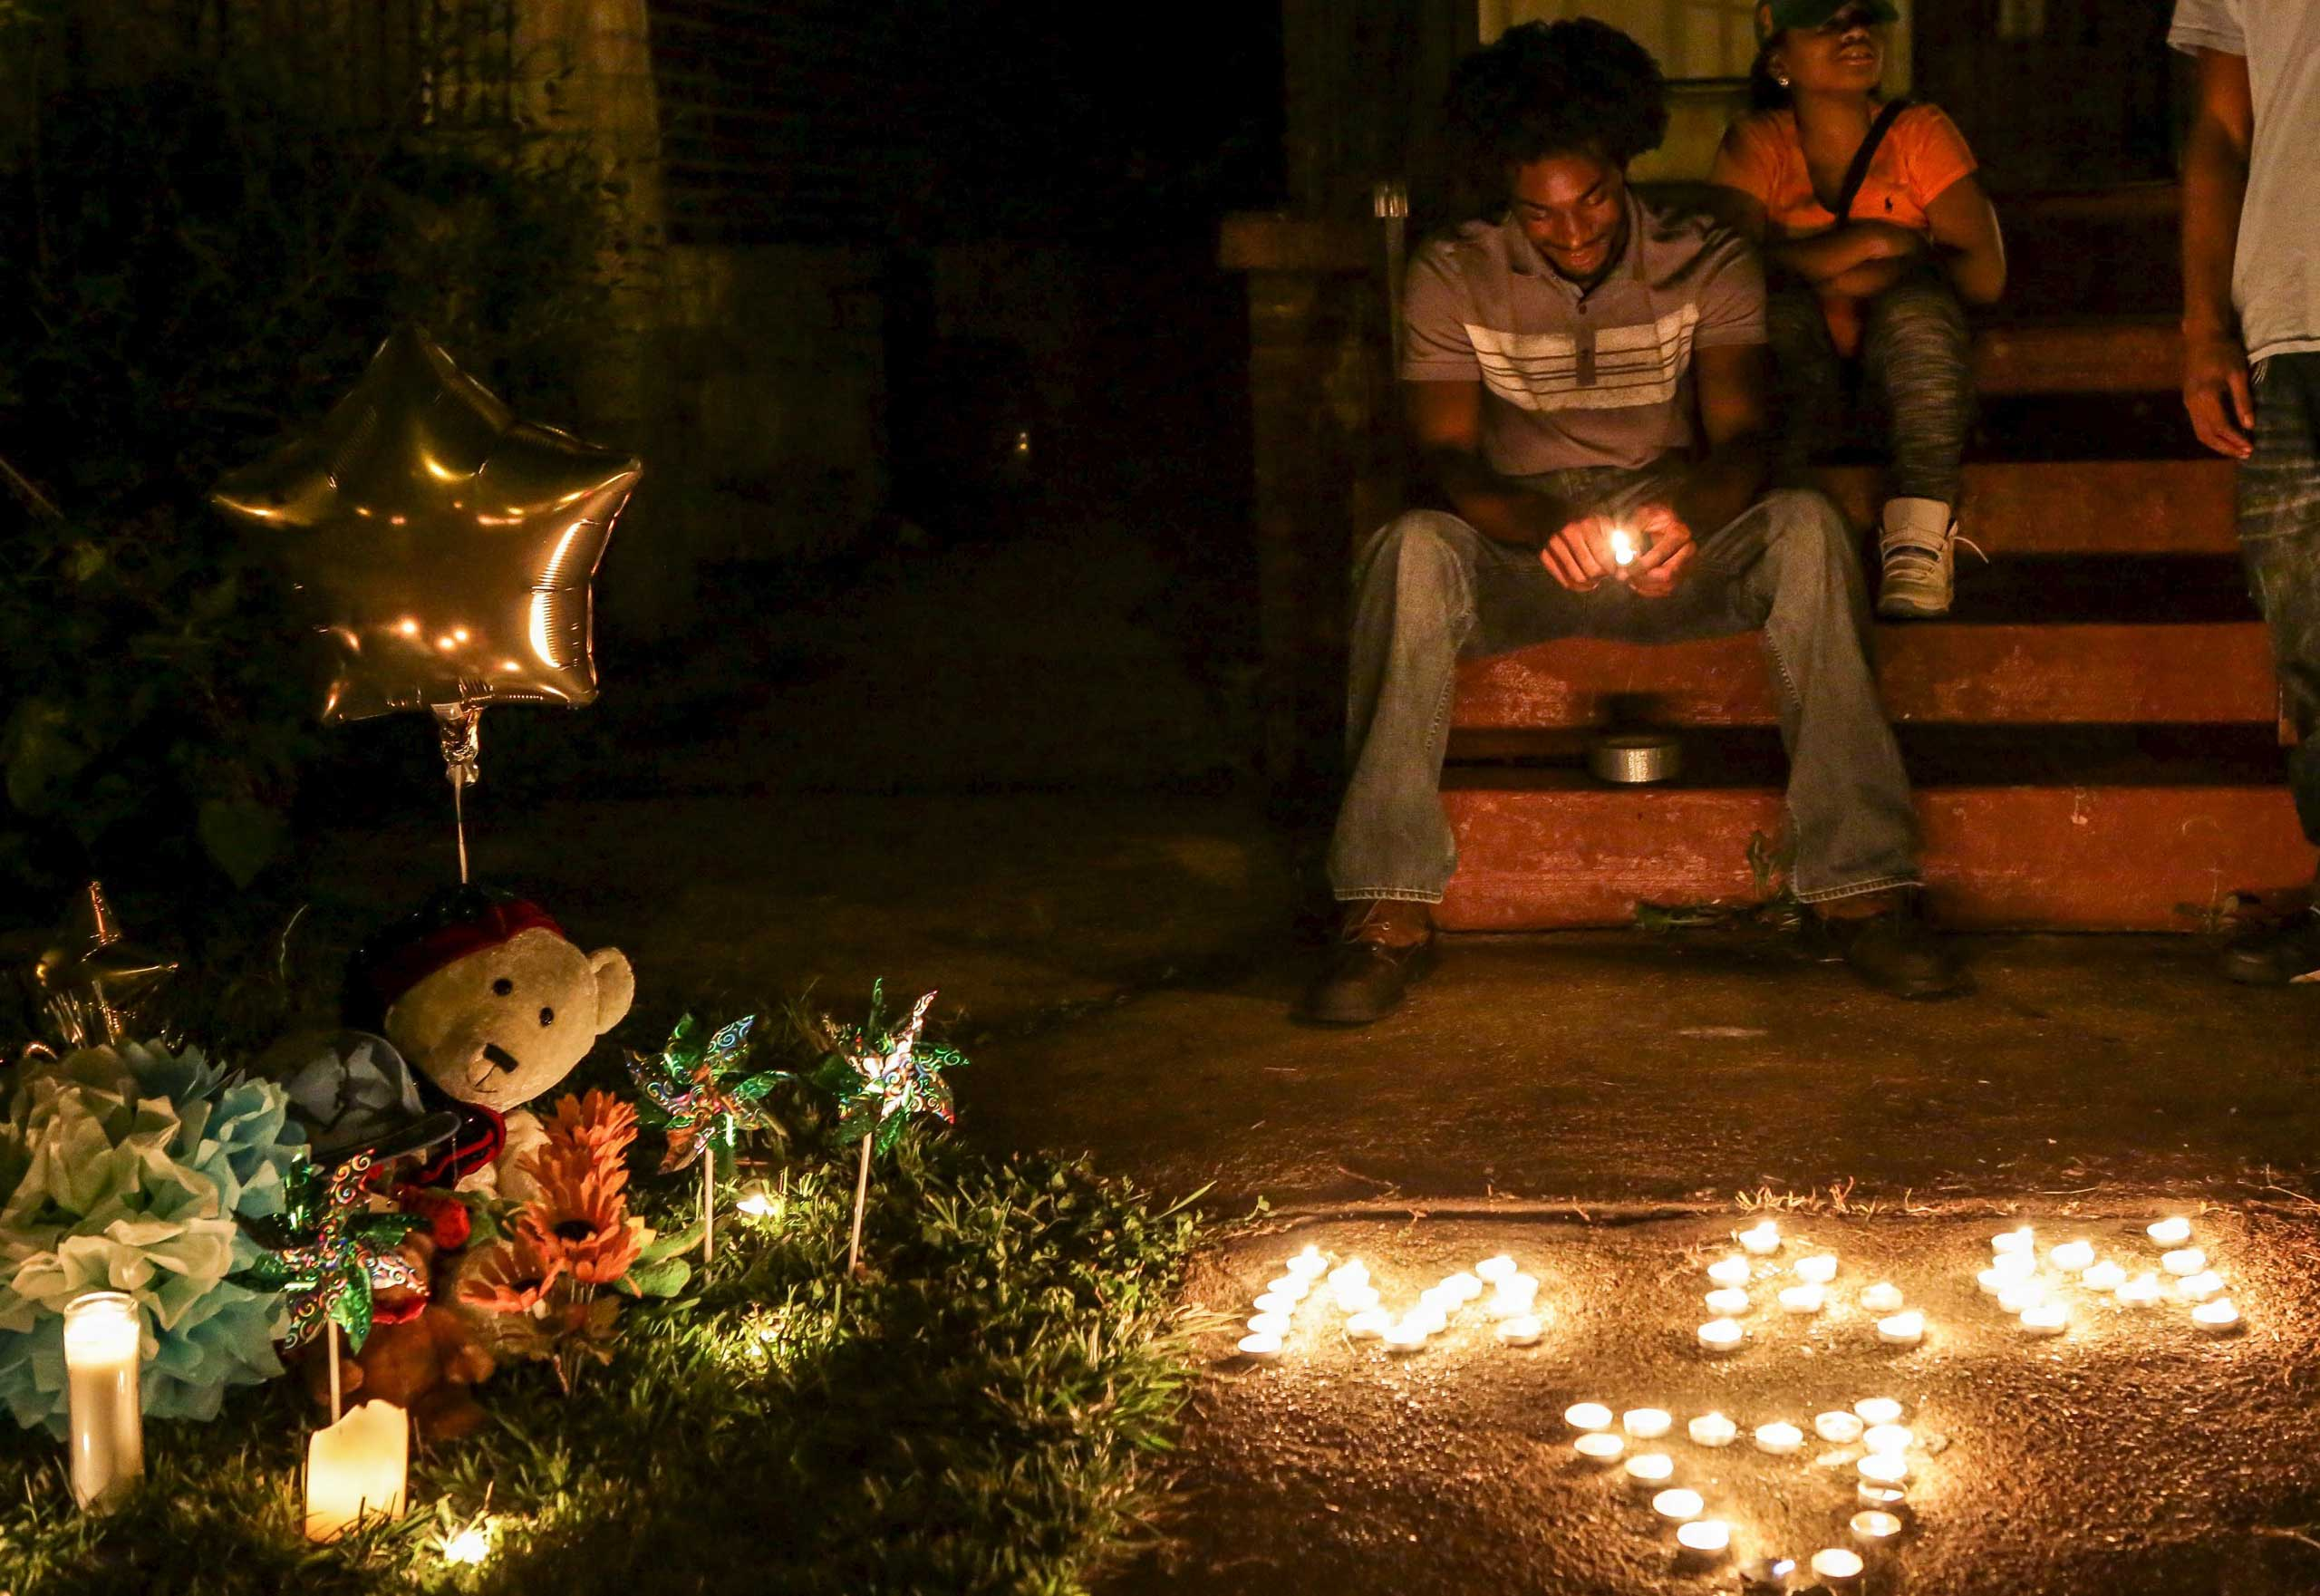 Chris Ball-Bey, the brother of Mansur Ball-Bey, sits by his brother's memorial after a candlelight vigil on Walton Ave in St. Louis, Mo., on Aug. 20, 2015.